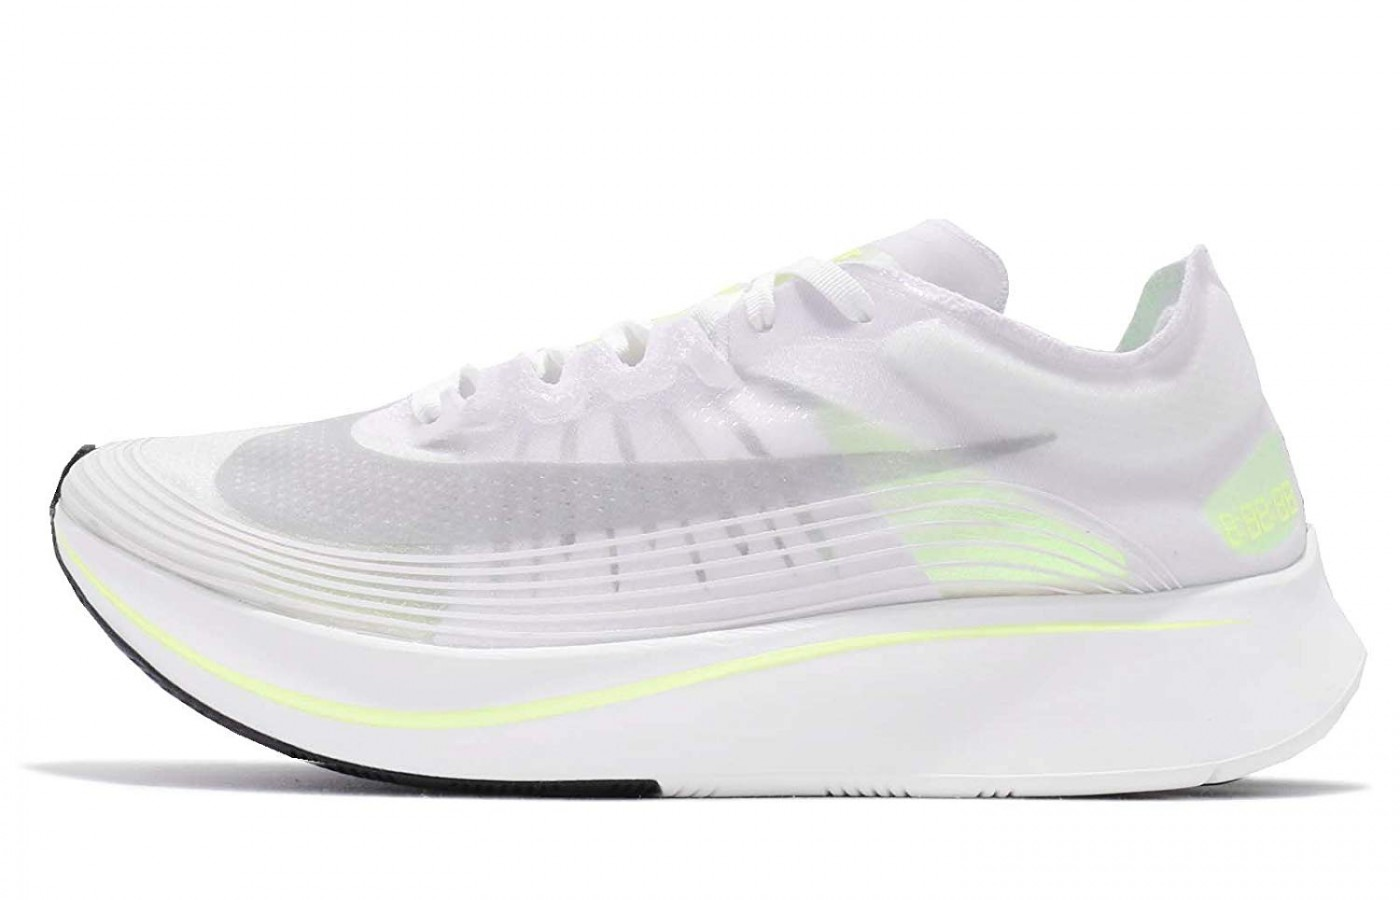 bea1b0bb77ae Nike Zoom Fly SP Reviewed for Performance in 2019